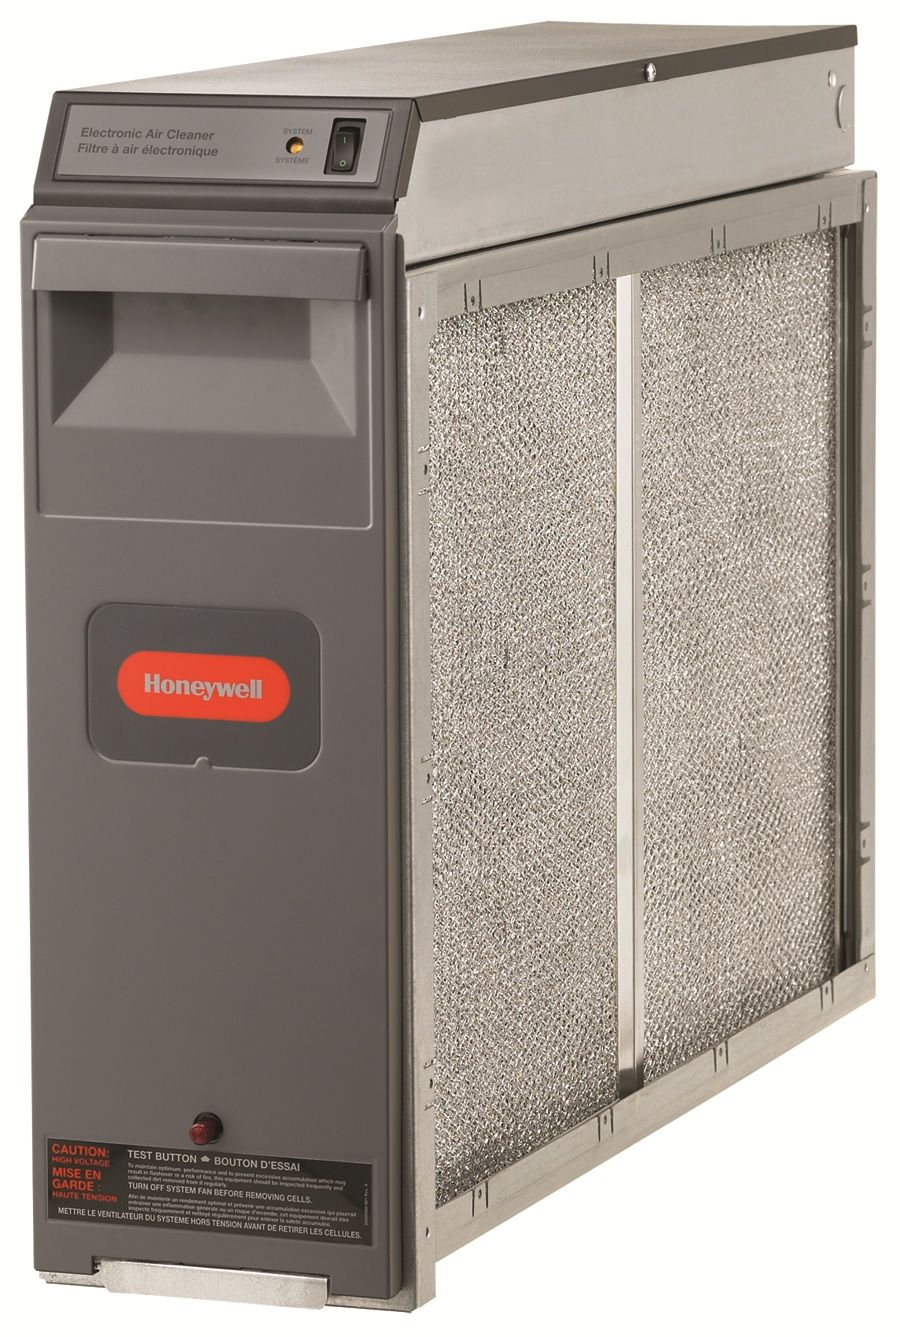 Honeywell f300 air cleaner ac pro air cleaner